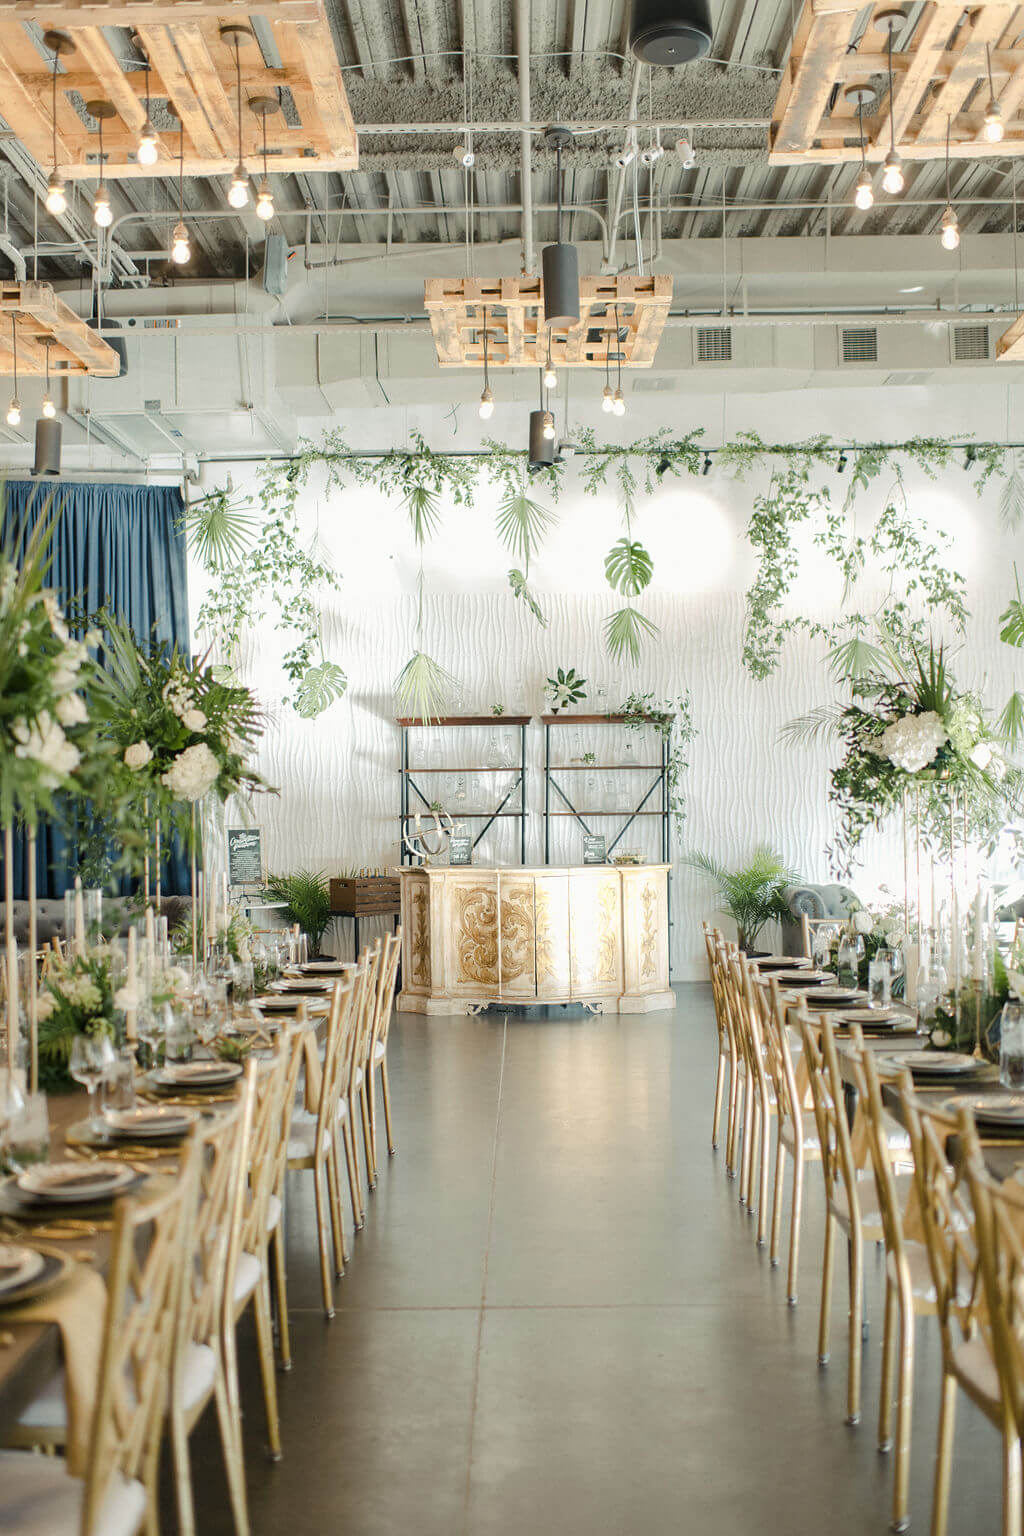 CONSTELLATION PARTY INSPIRATION WITH MATTE BLACK, GOLD, GLASS AND WOOD DETAILS - Photos by Wolfcrest Photography